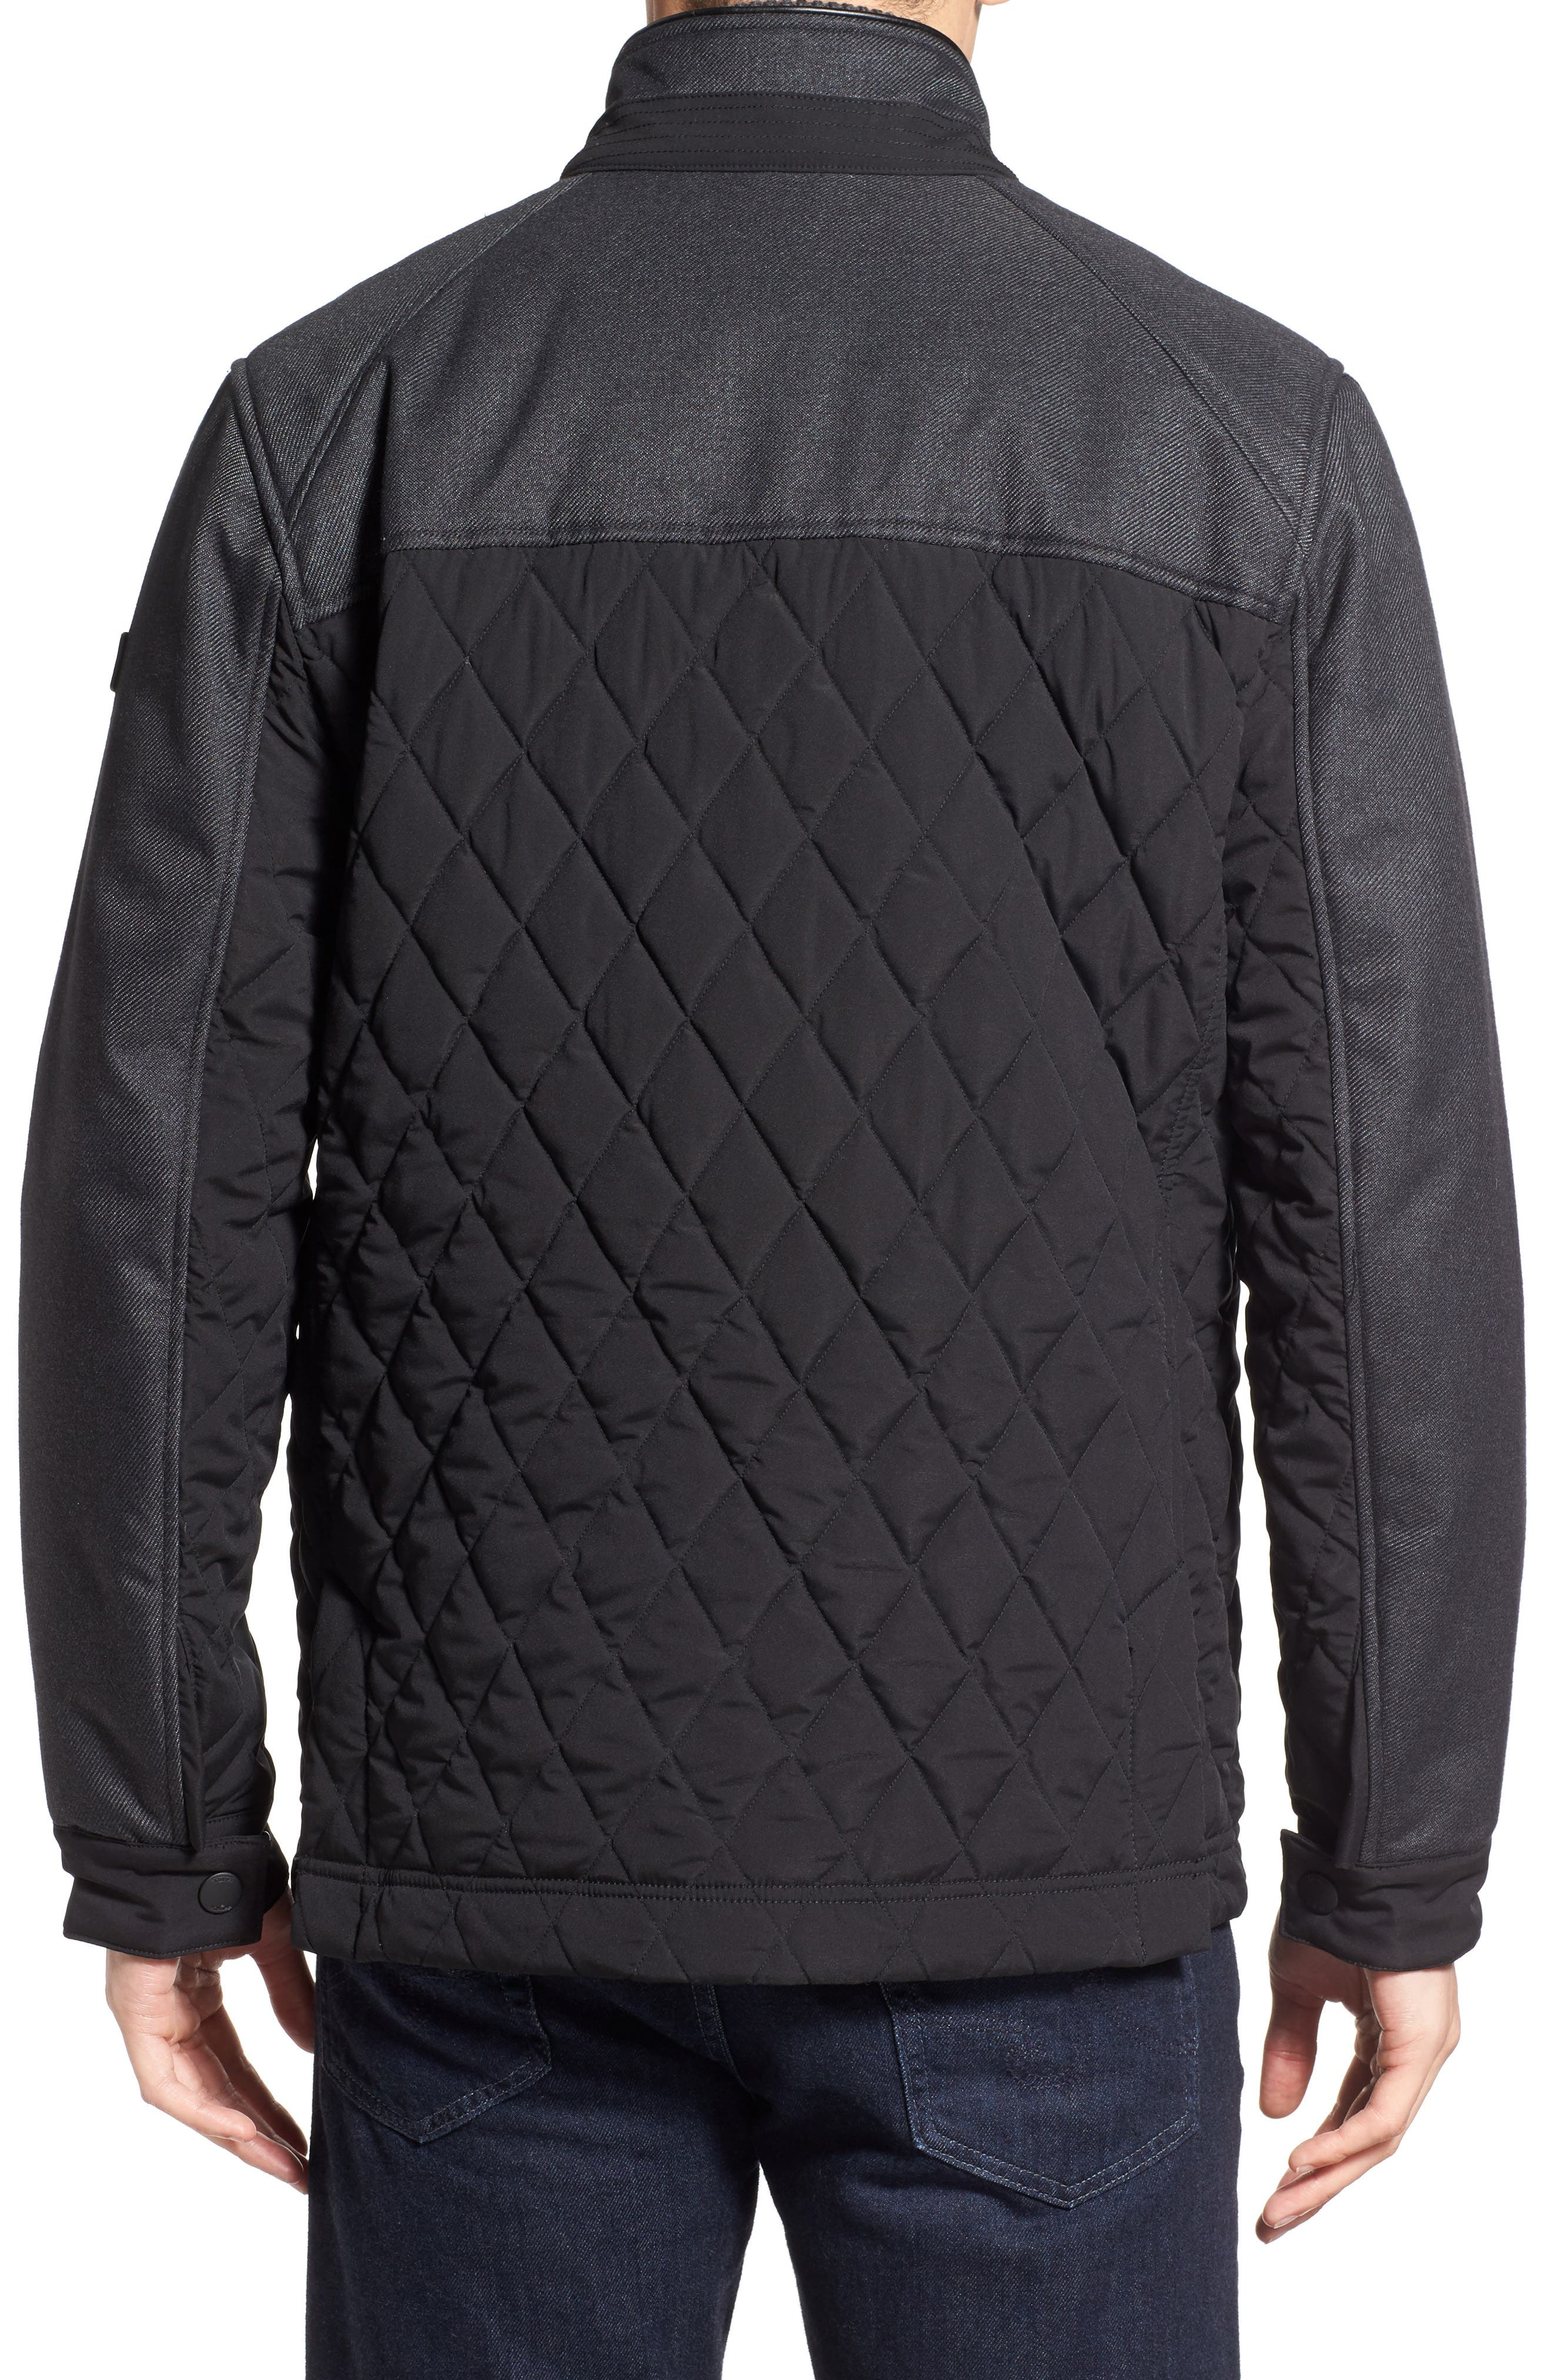 'Heritage' Quilted Jacket,                             Alternate thumbnail 3, color,                             001